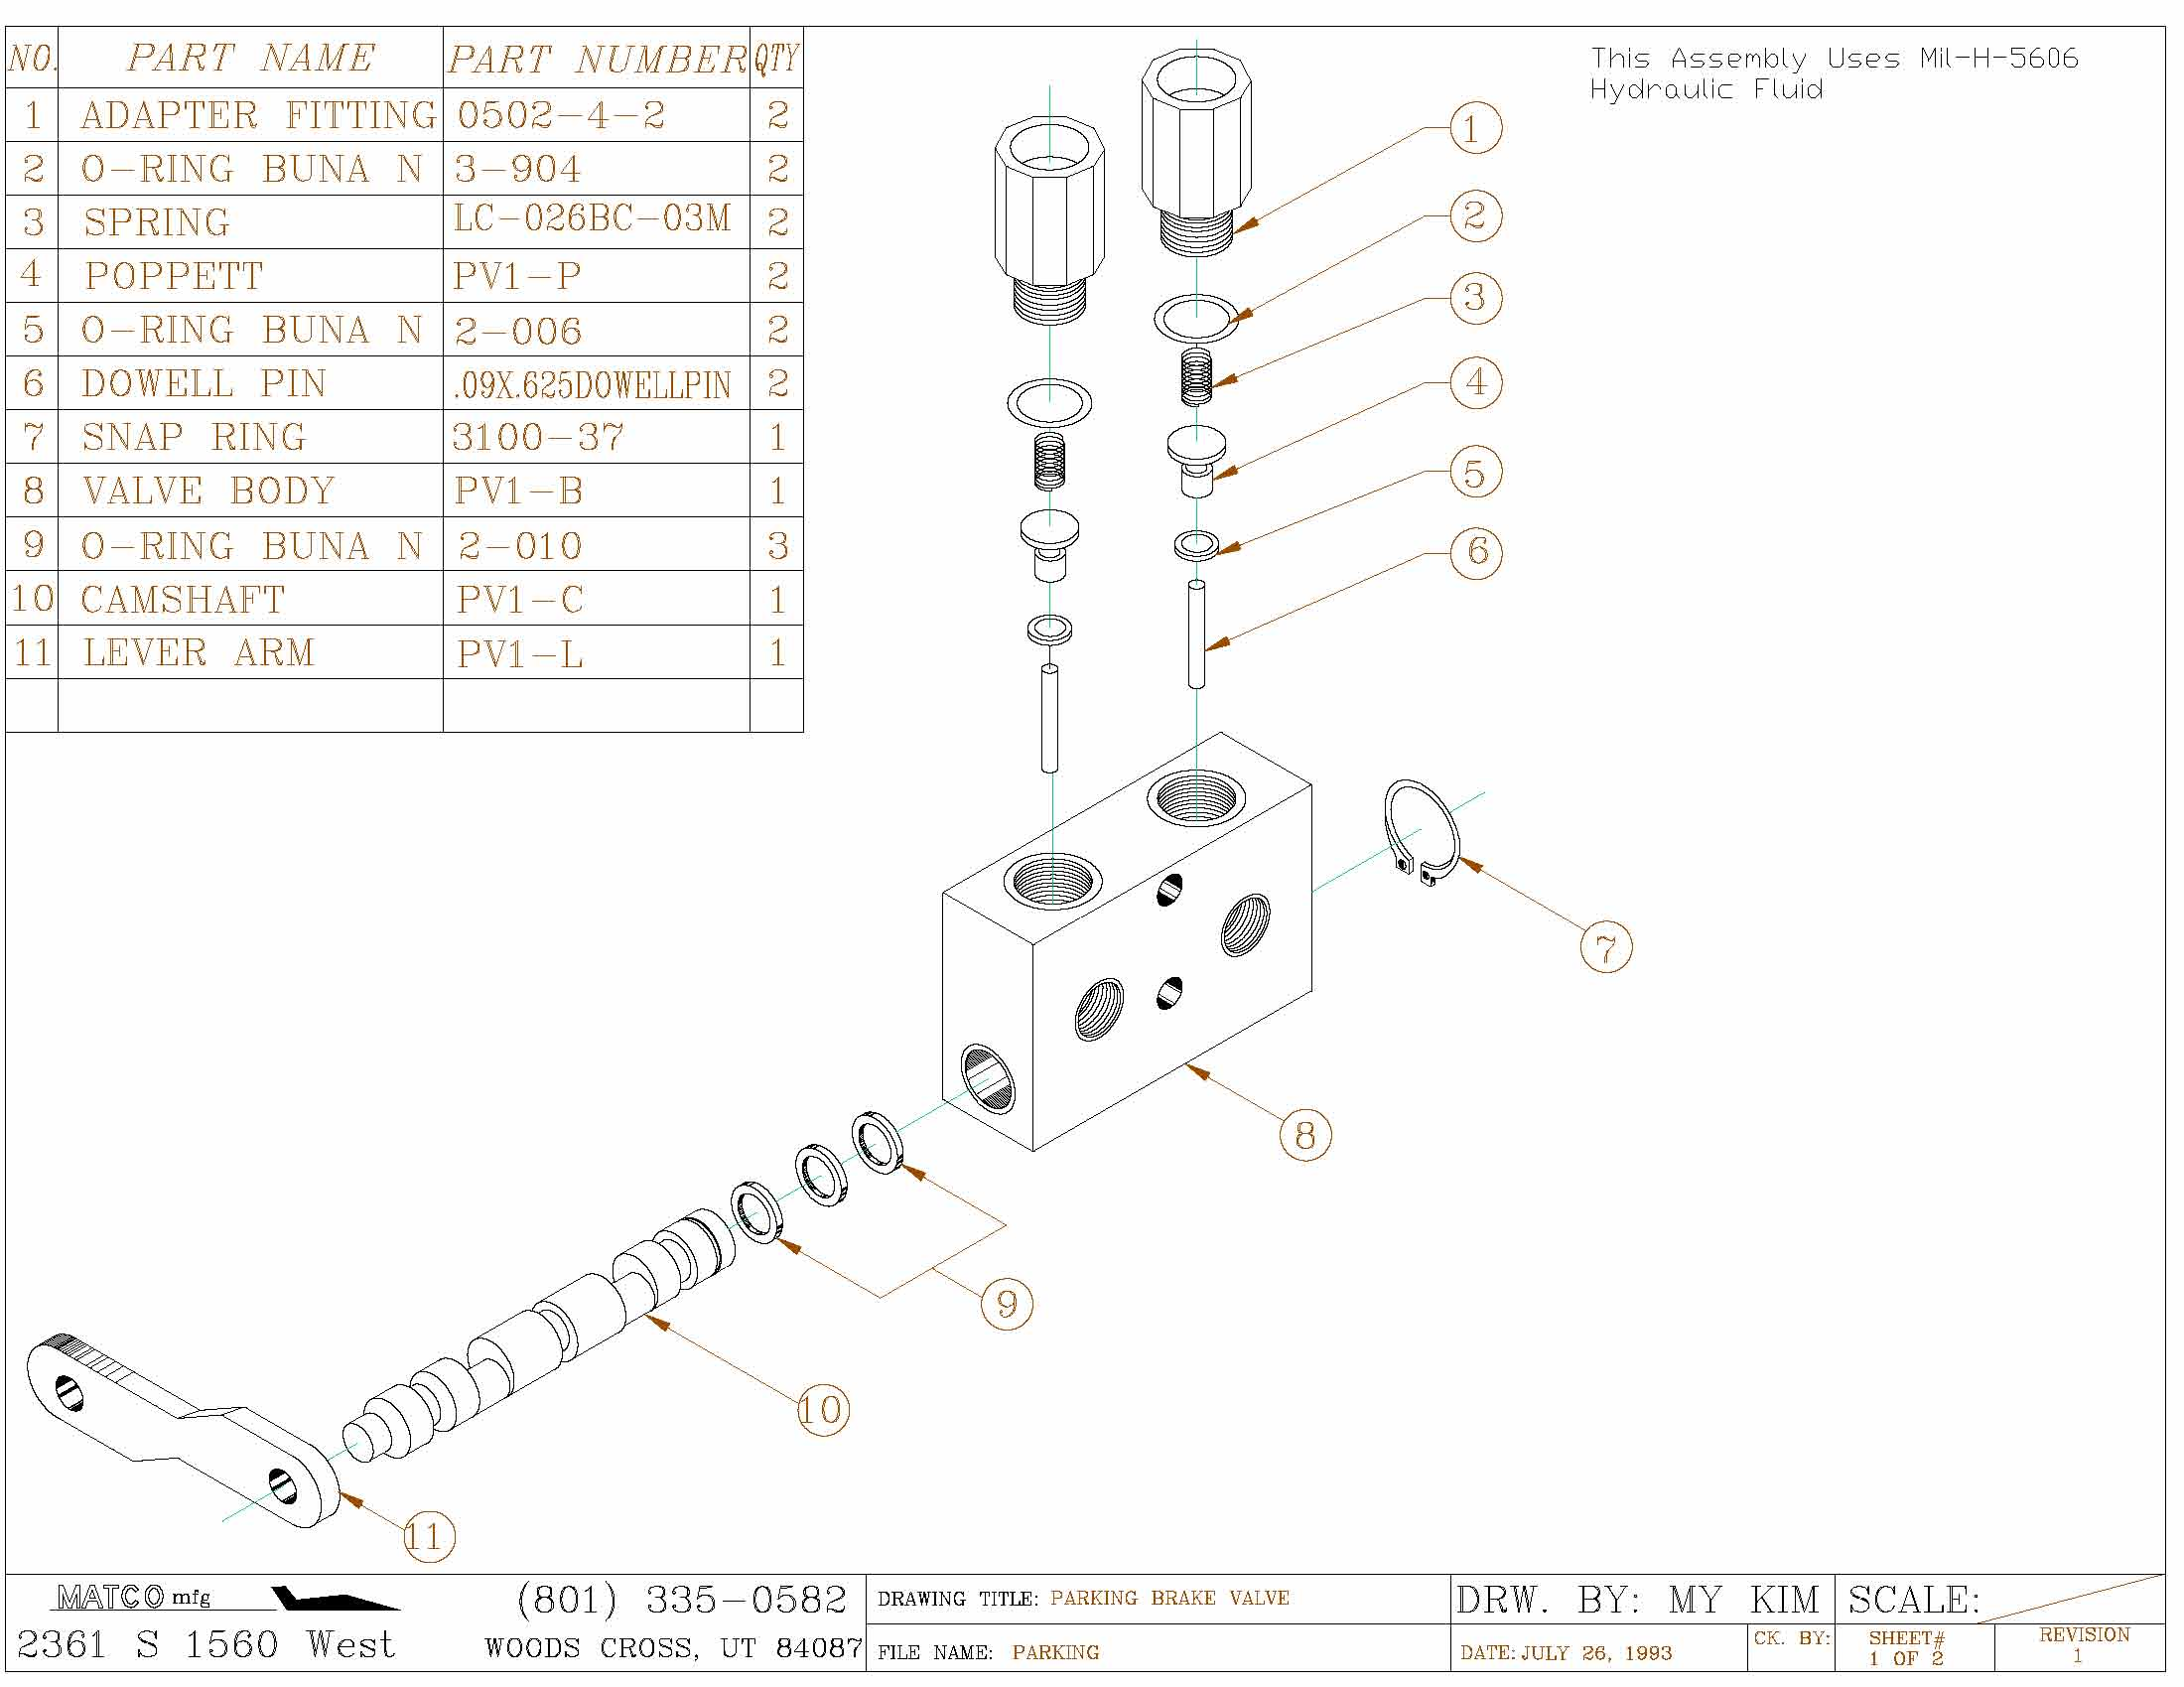 2001 Jeep Cherokee Throttle Body Wiring Diagram moreover 4 Way 2 Position Valve Schematic besides 88 Ford F 150 Engine Diagram additionally P 0900c1528004b198 furthermore 960707 Pcm Wiring Harness Diagram. on 1988 jeep cherokee injector wiring